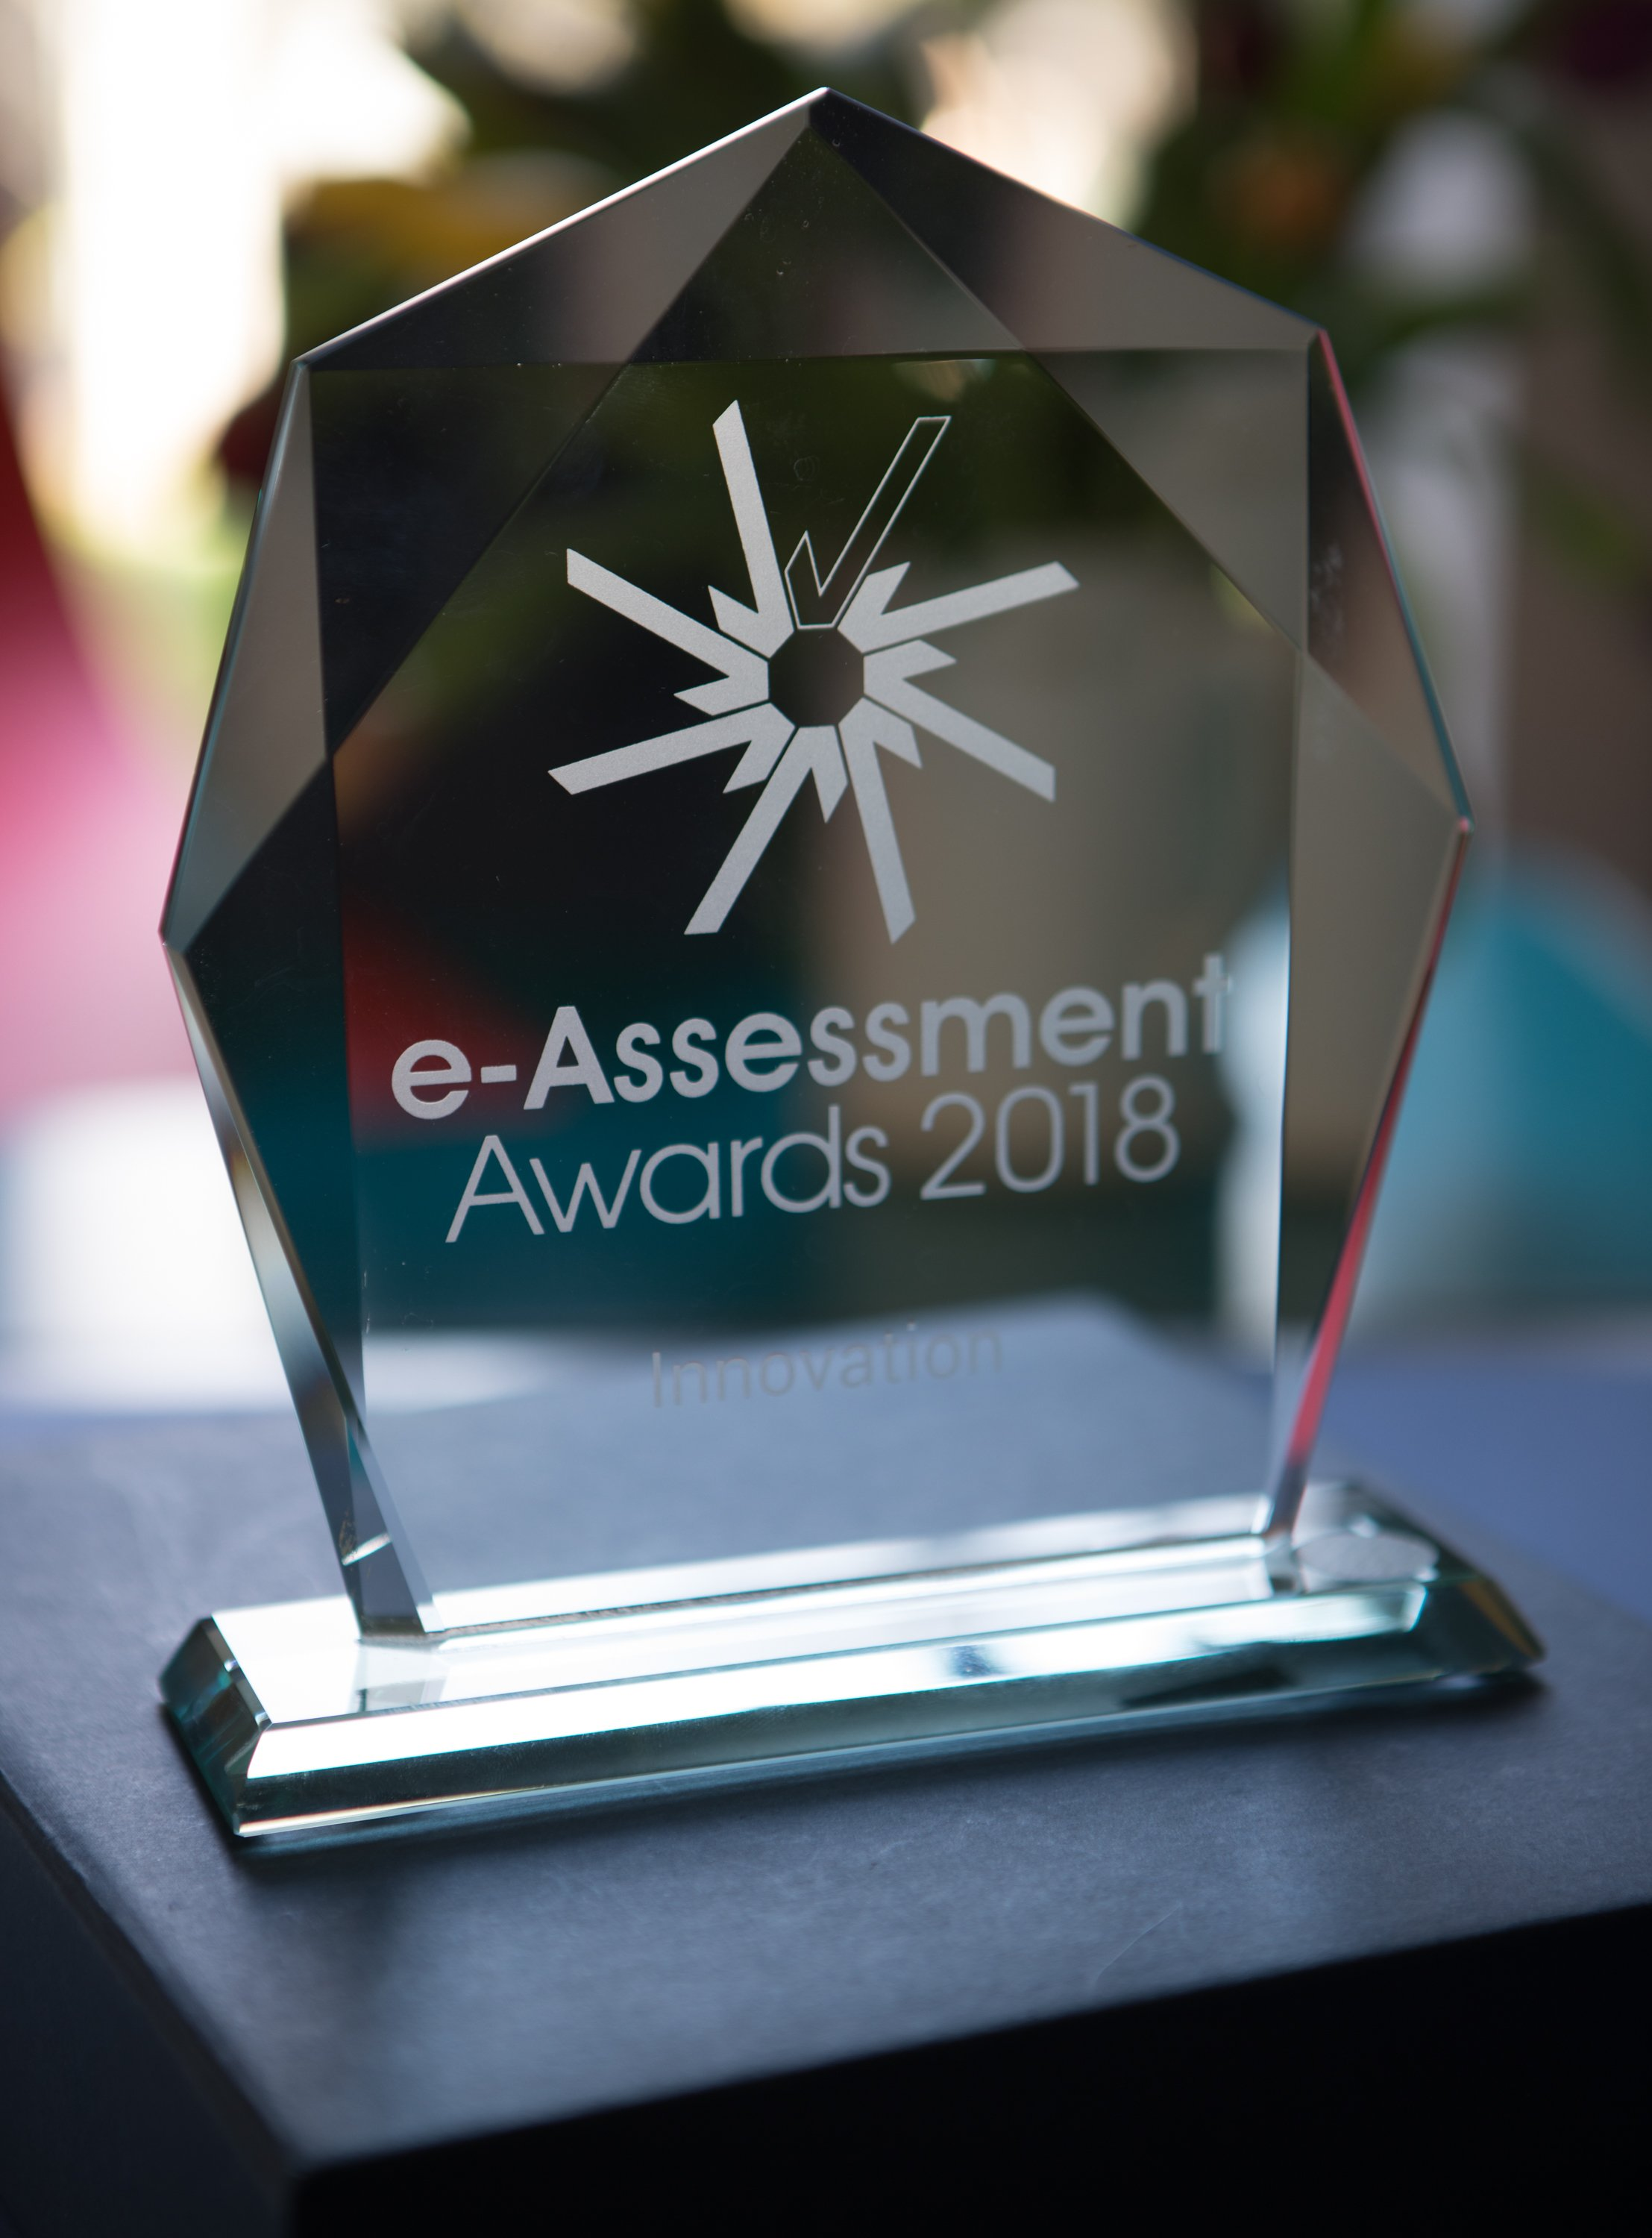 The e-Assessment Awards: Winners announced for the 2018 international awards